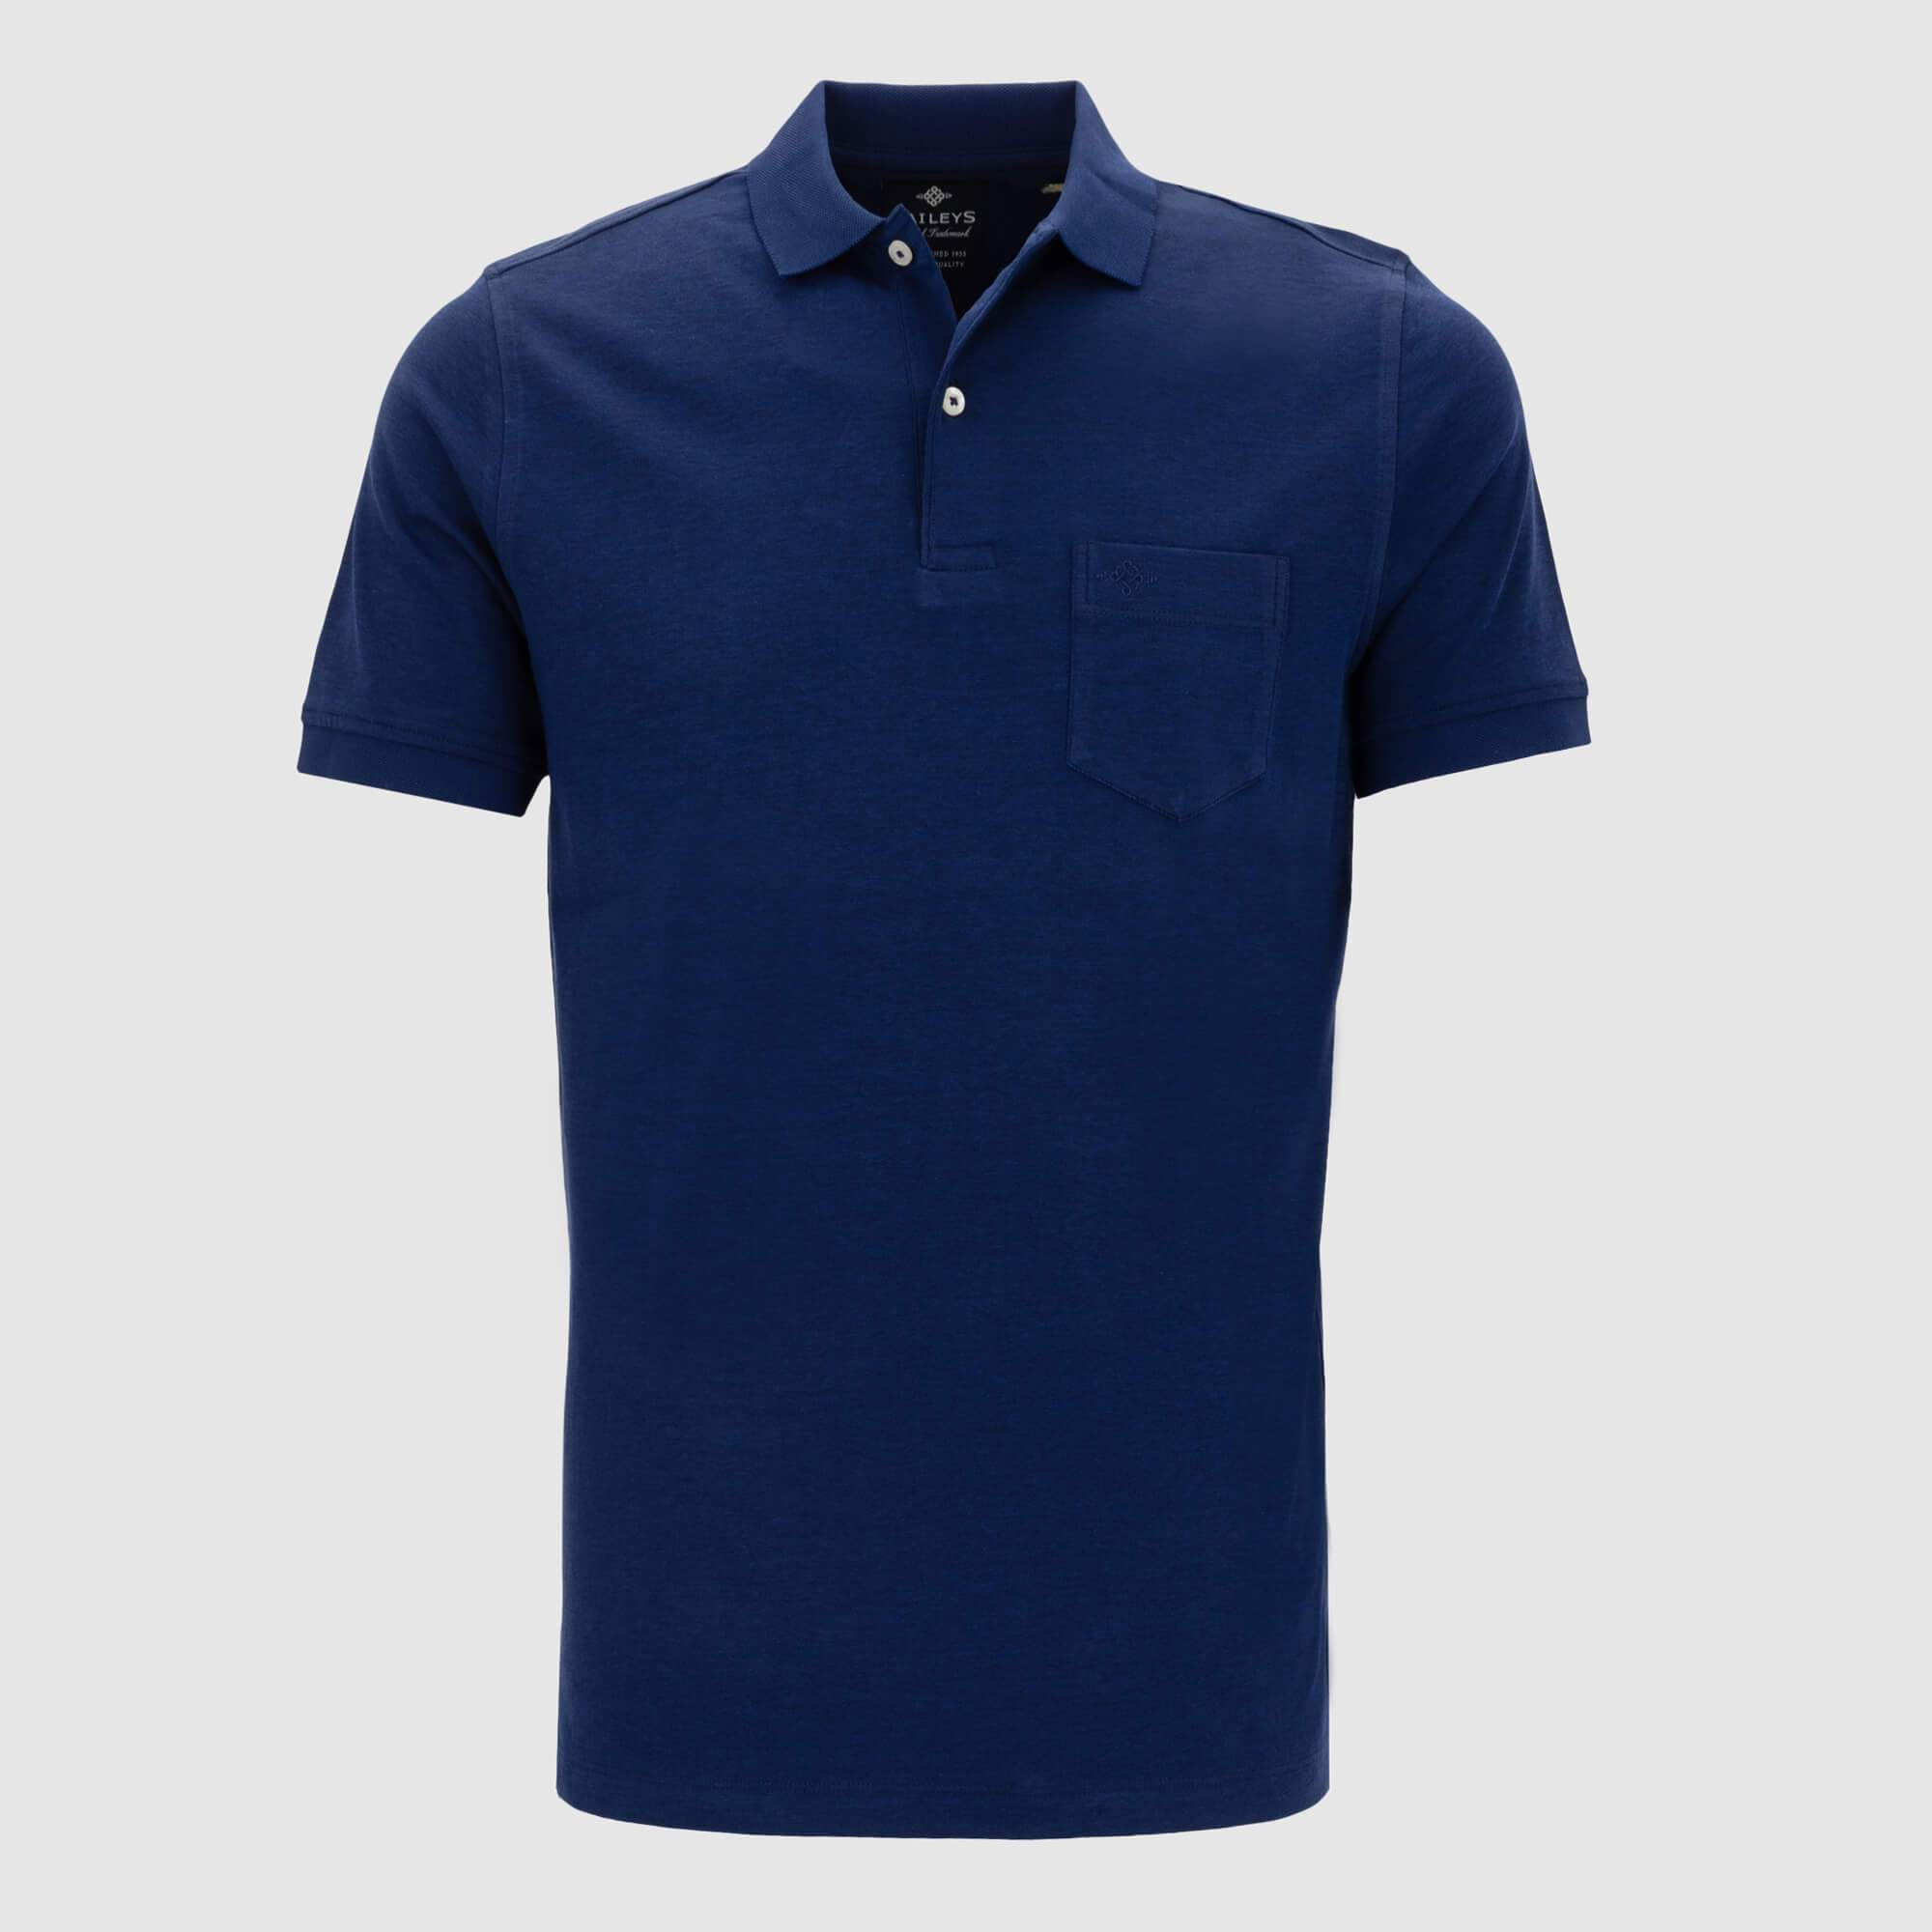 Polo liso regular fit 105280